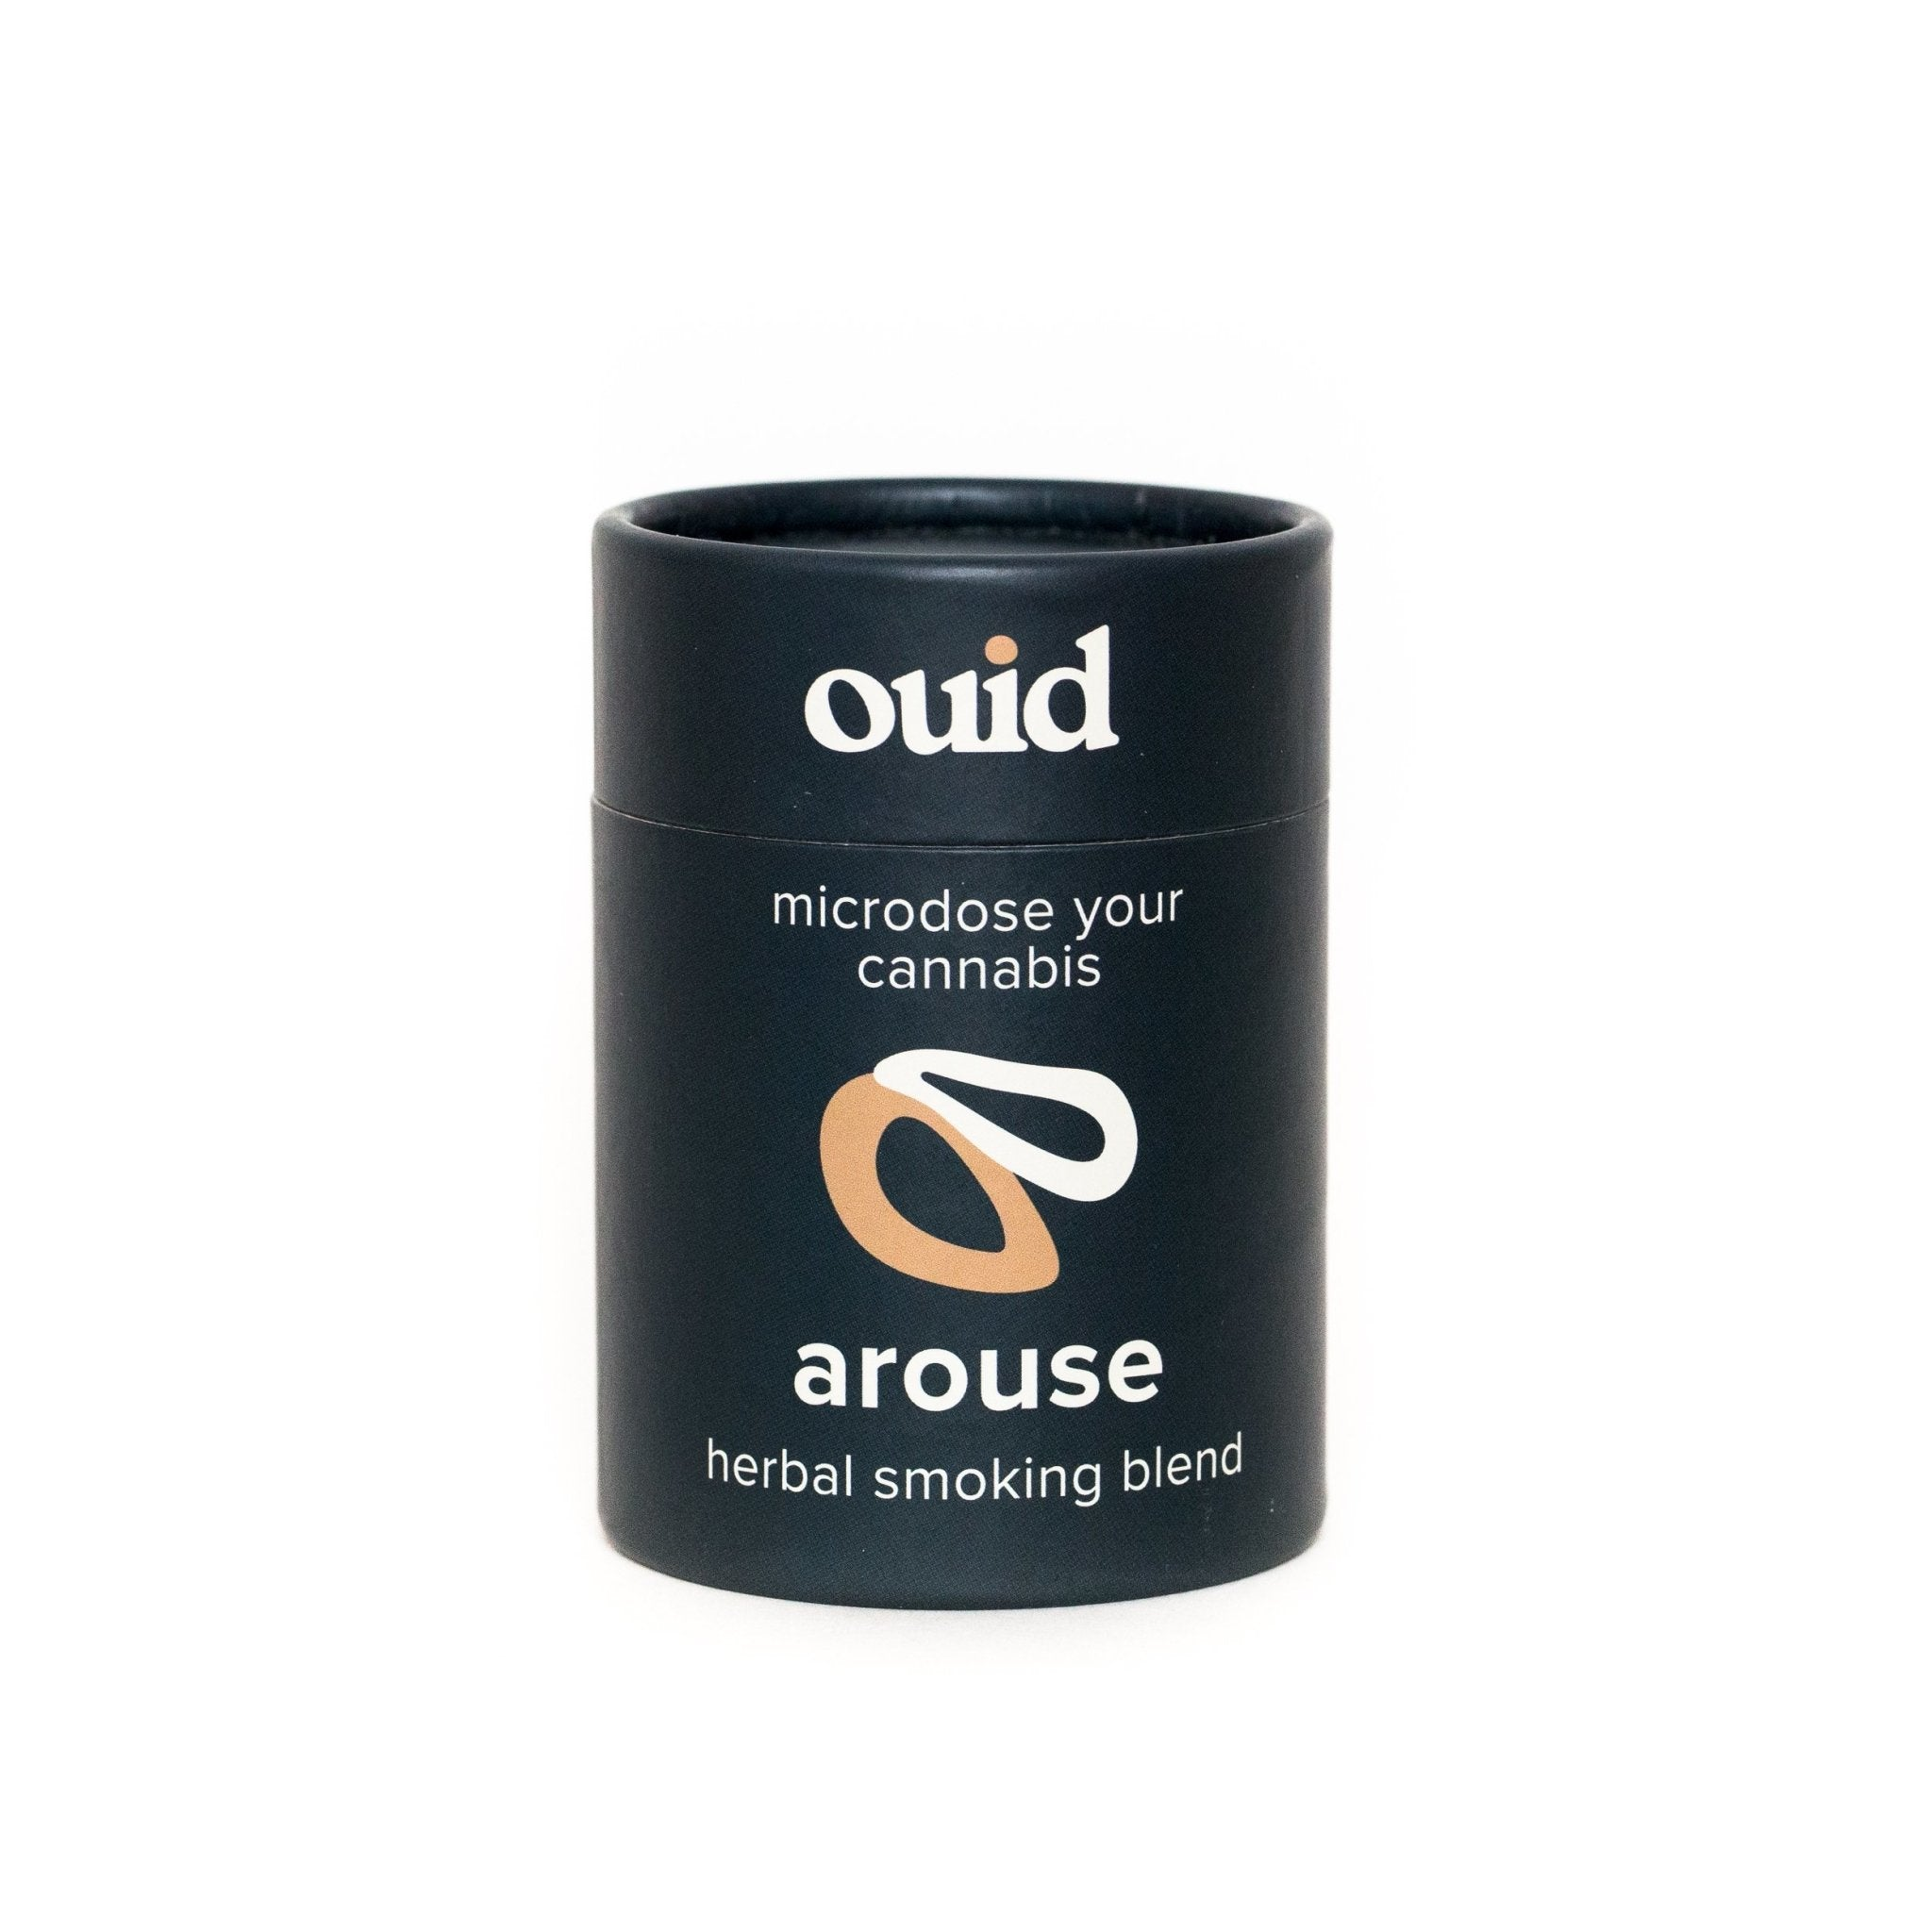 Arouse Herbal Smoking Blend by Ouid